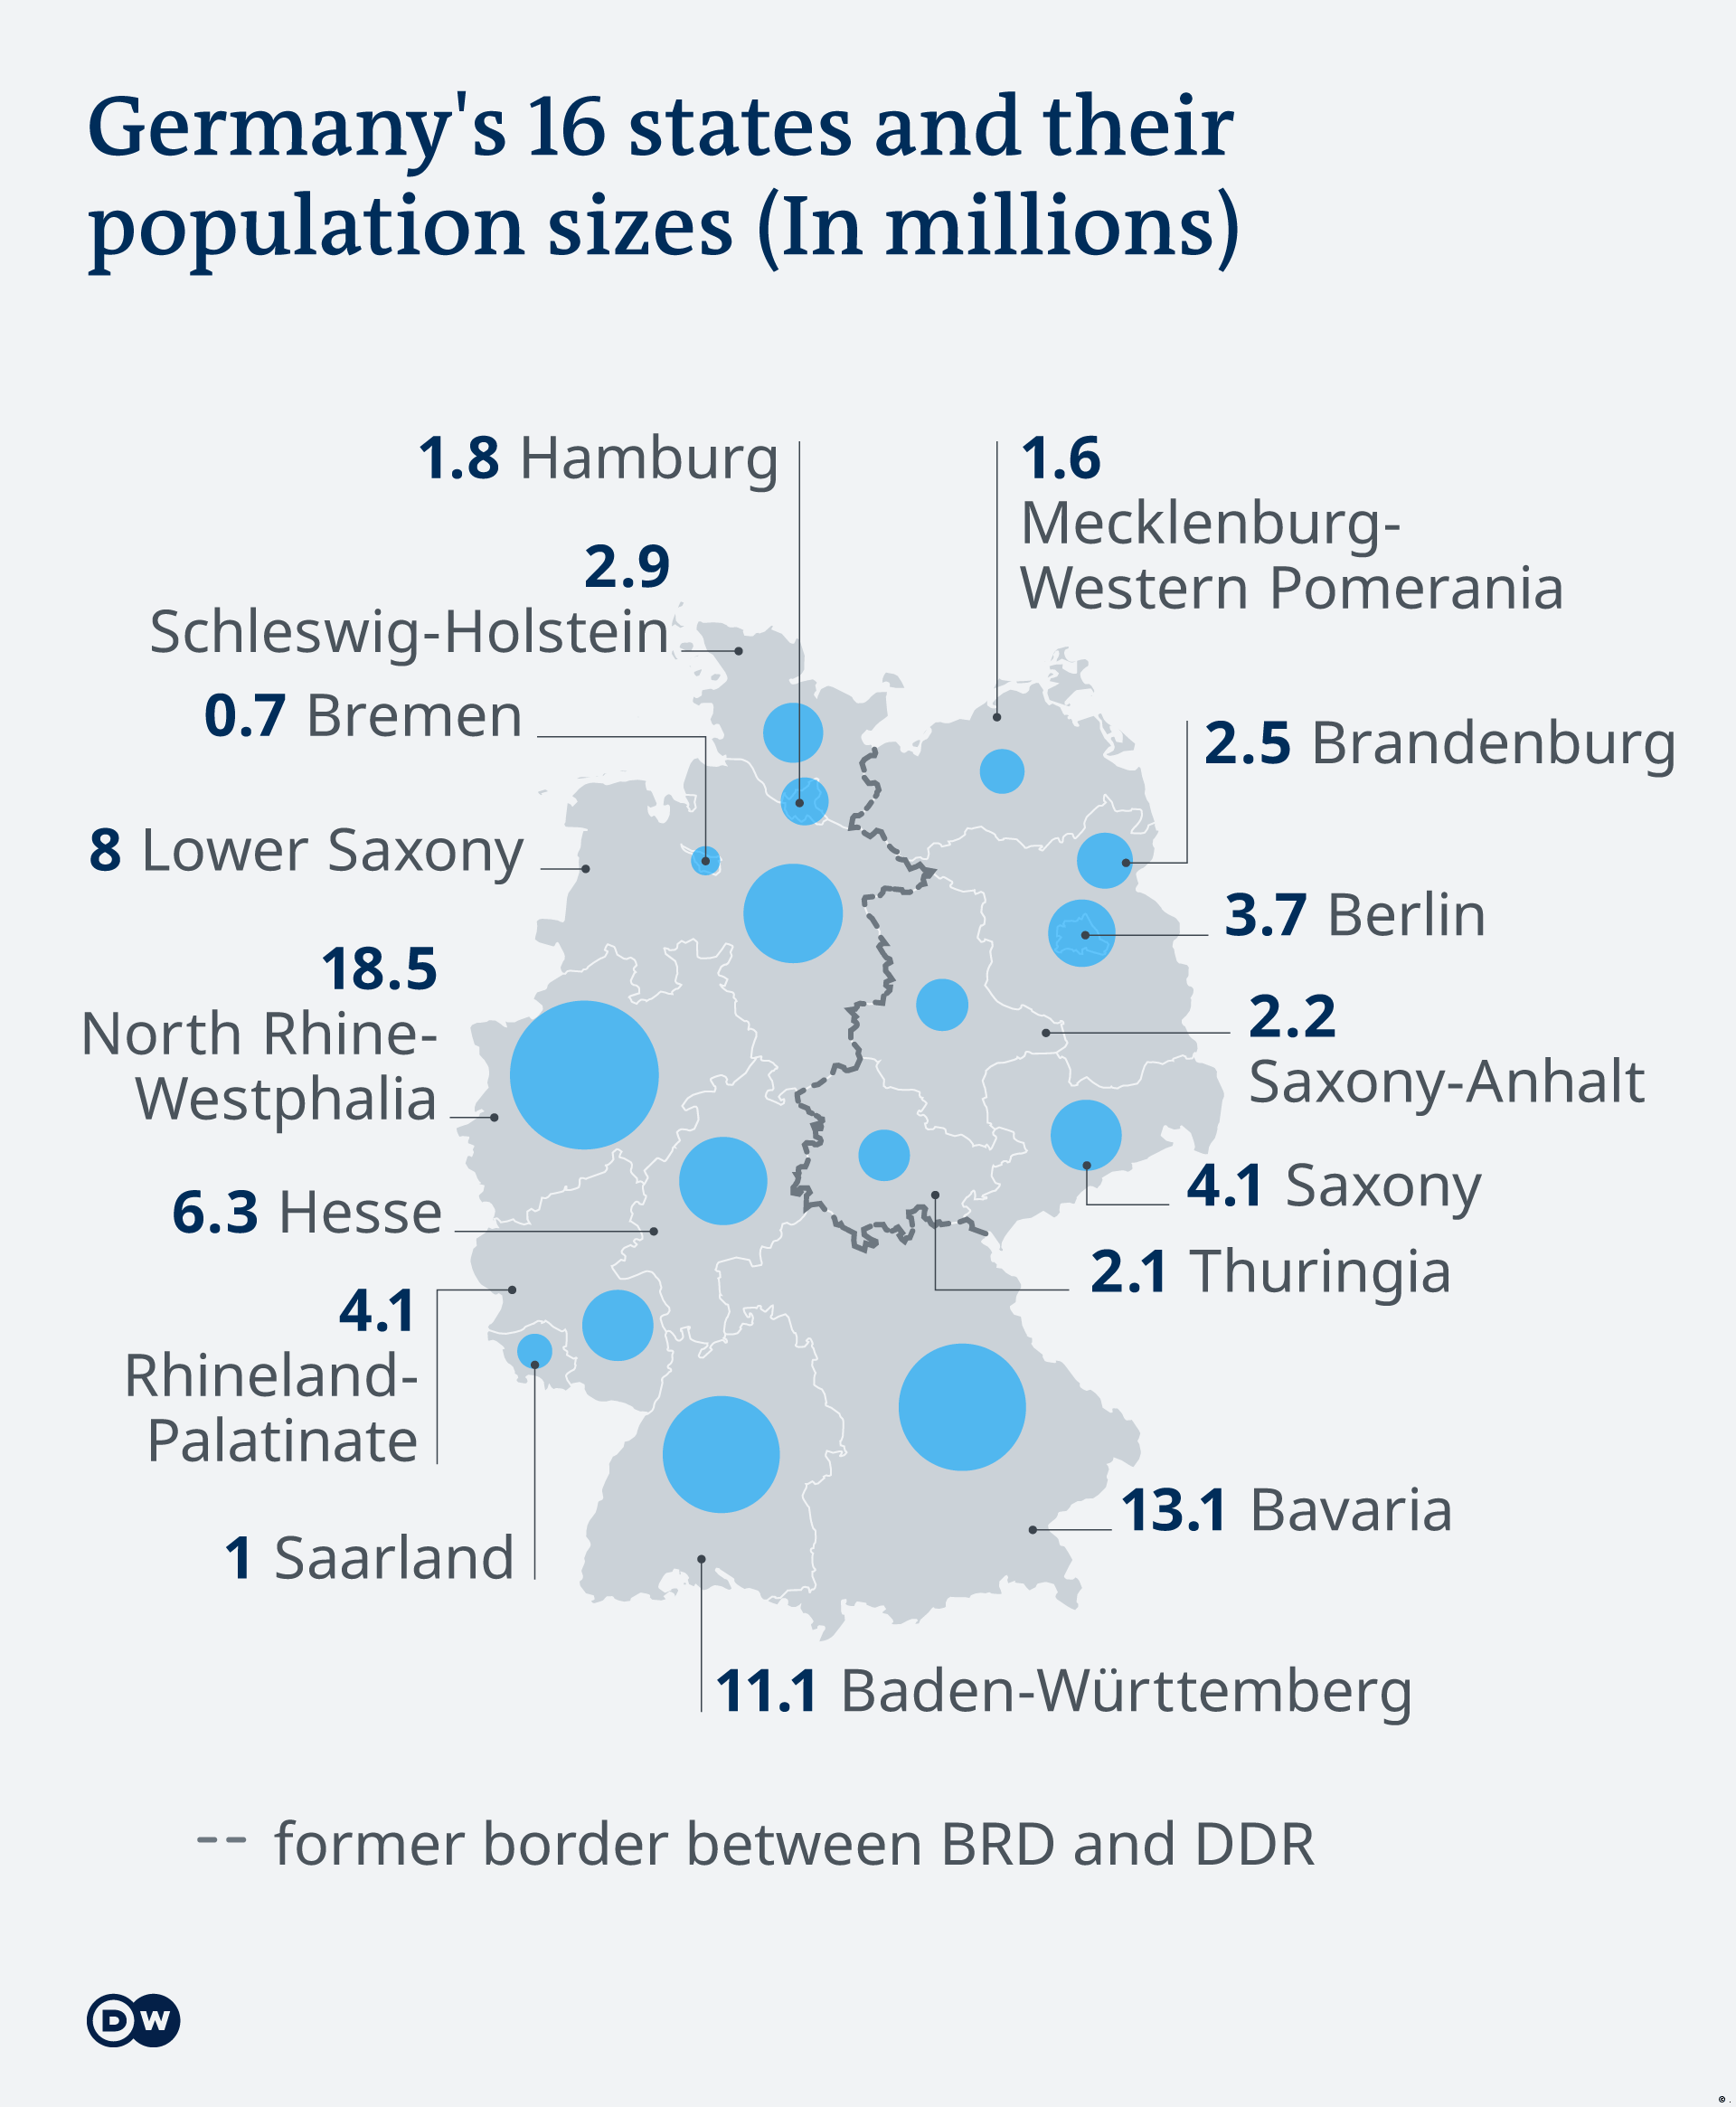 Map showing Germany's federal states and their population sizes